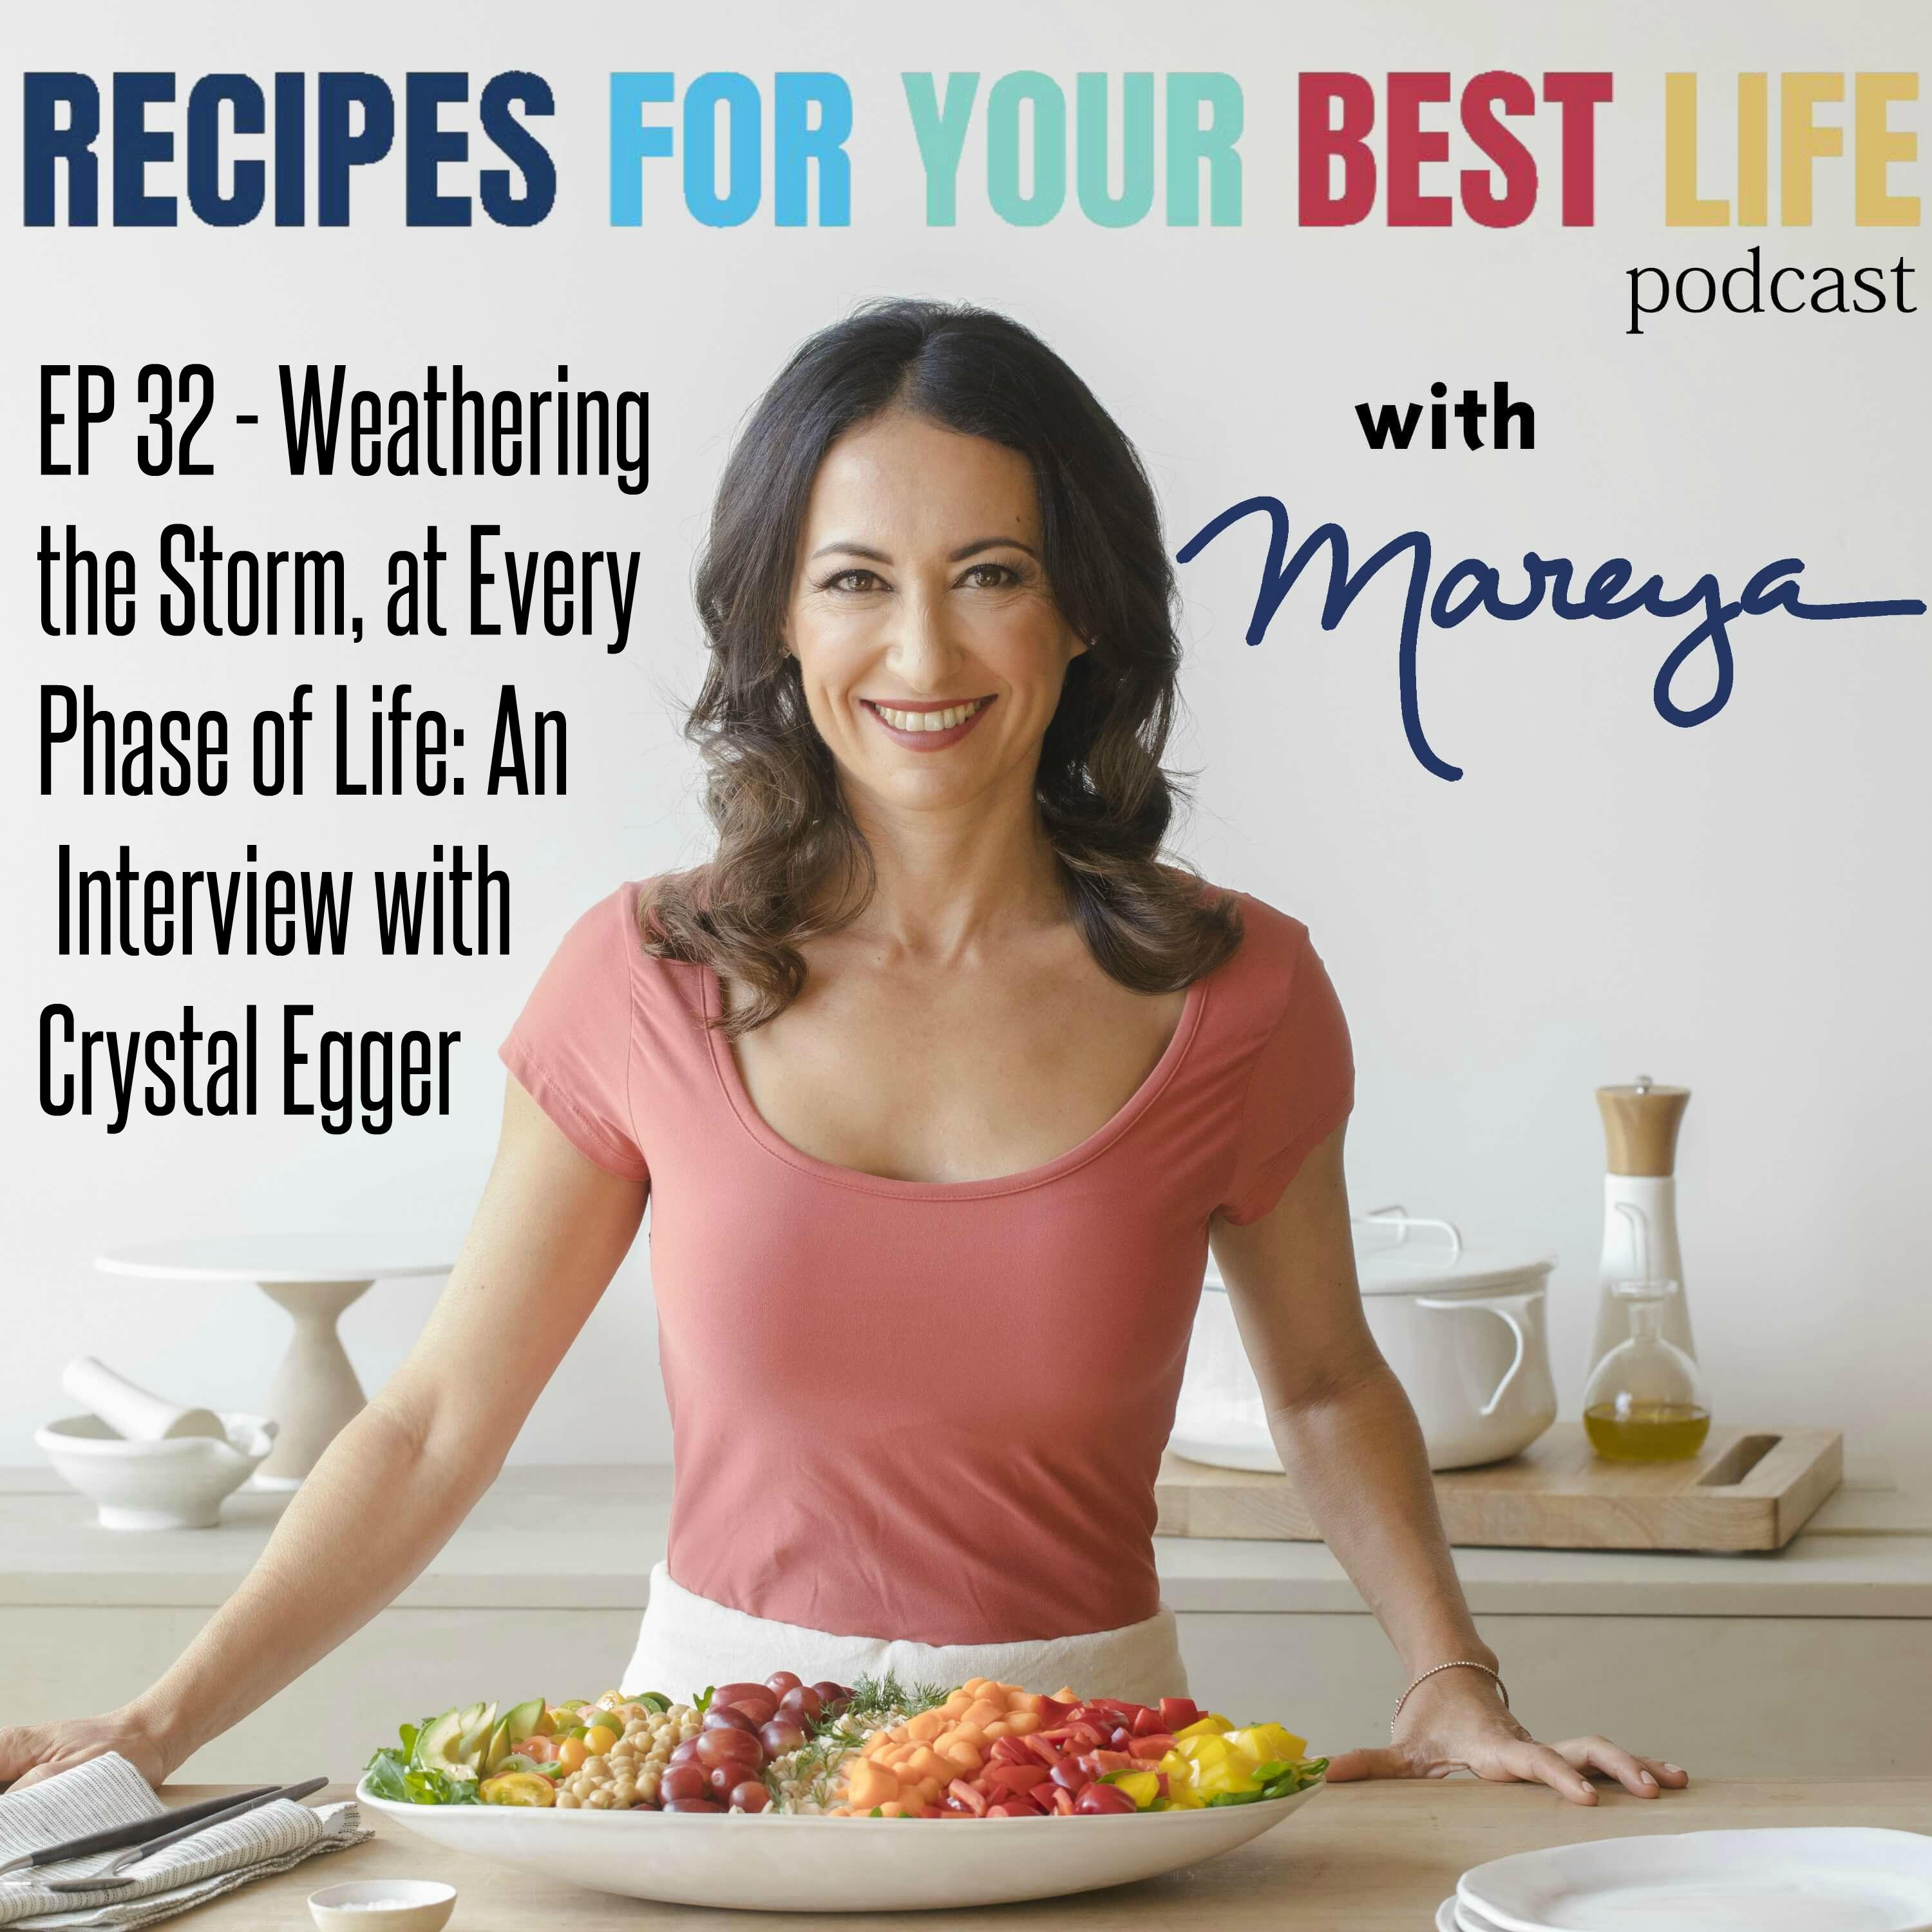 EP 32 - Weathering the Storm, at Every Phase of Life: An Interview with Crystal Egger